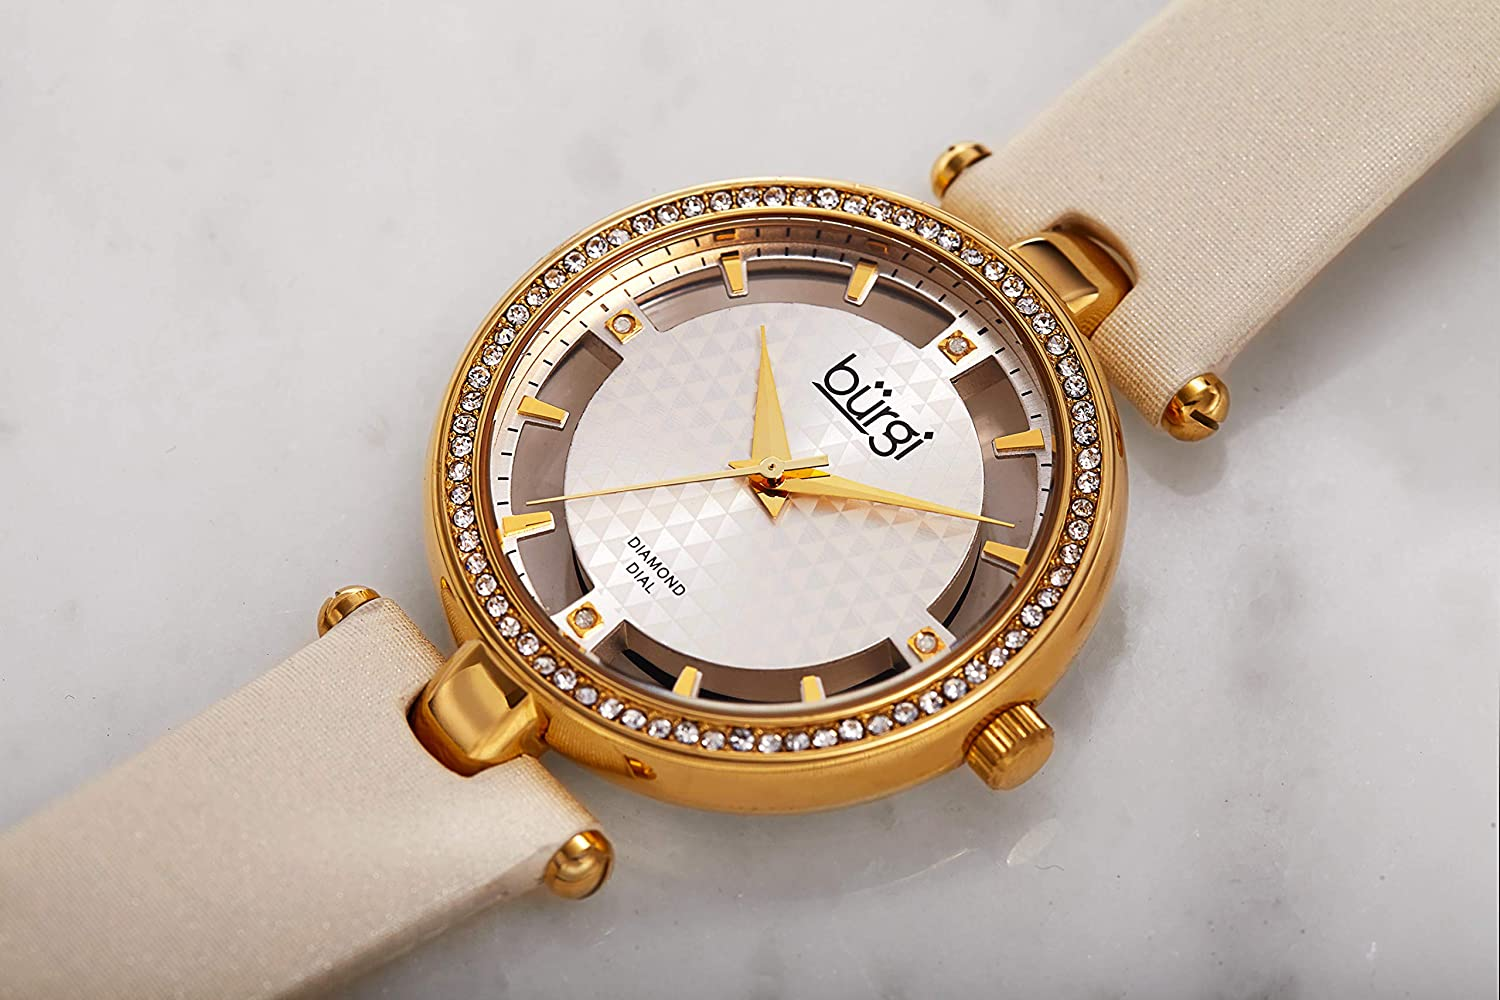 Burgi Swarovski Crystal Studded Watch - 4 Genuine Diamond Markers, See Through and Sunray Dial On Satin Over Leather Women's Watch - BUR104 Yellow Gold